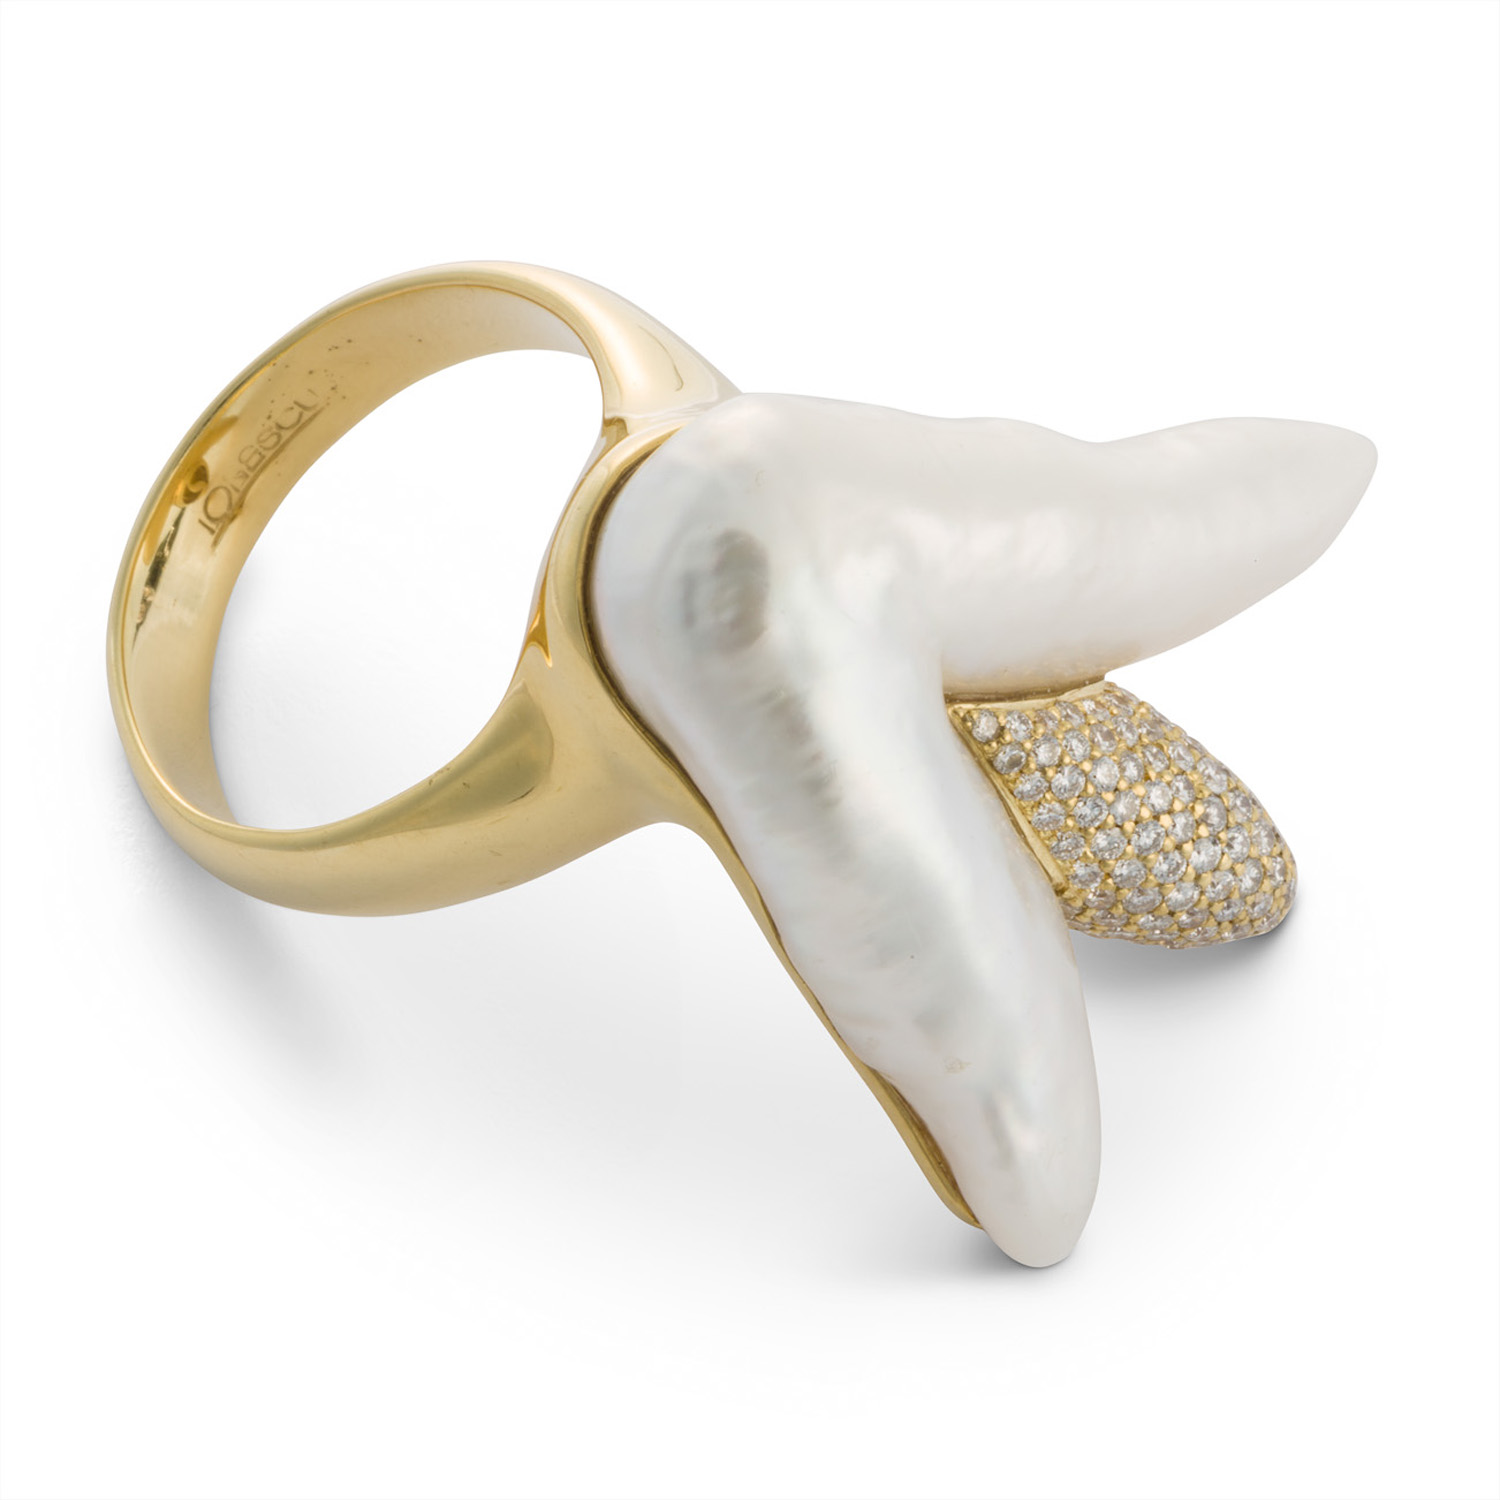 The Pearl Crown Ring